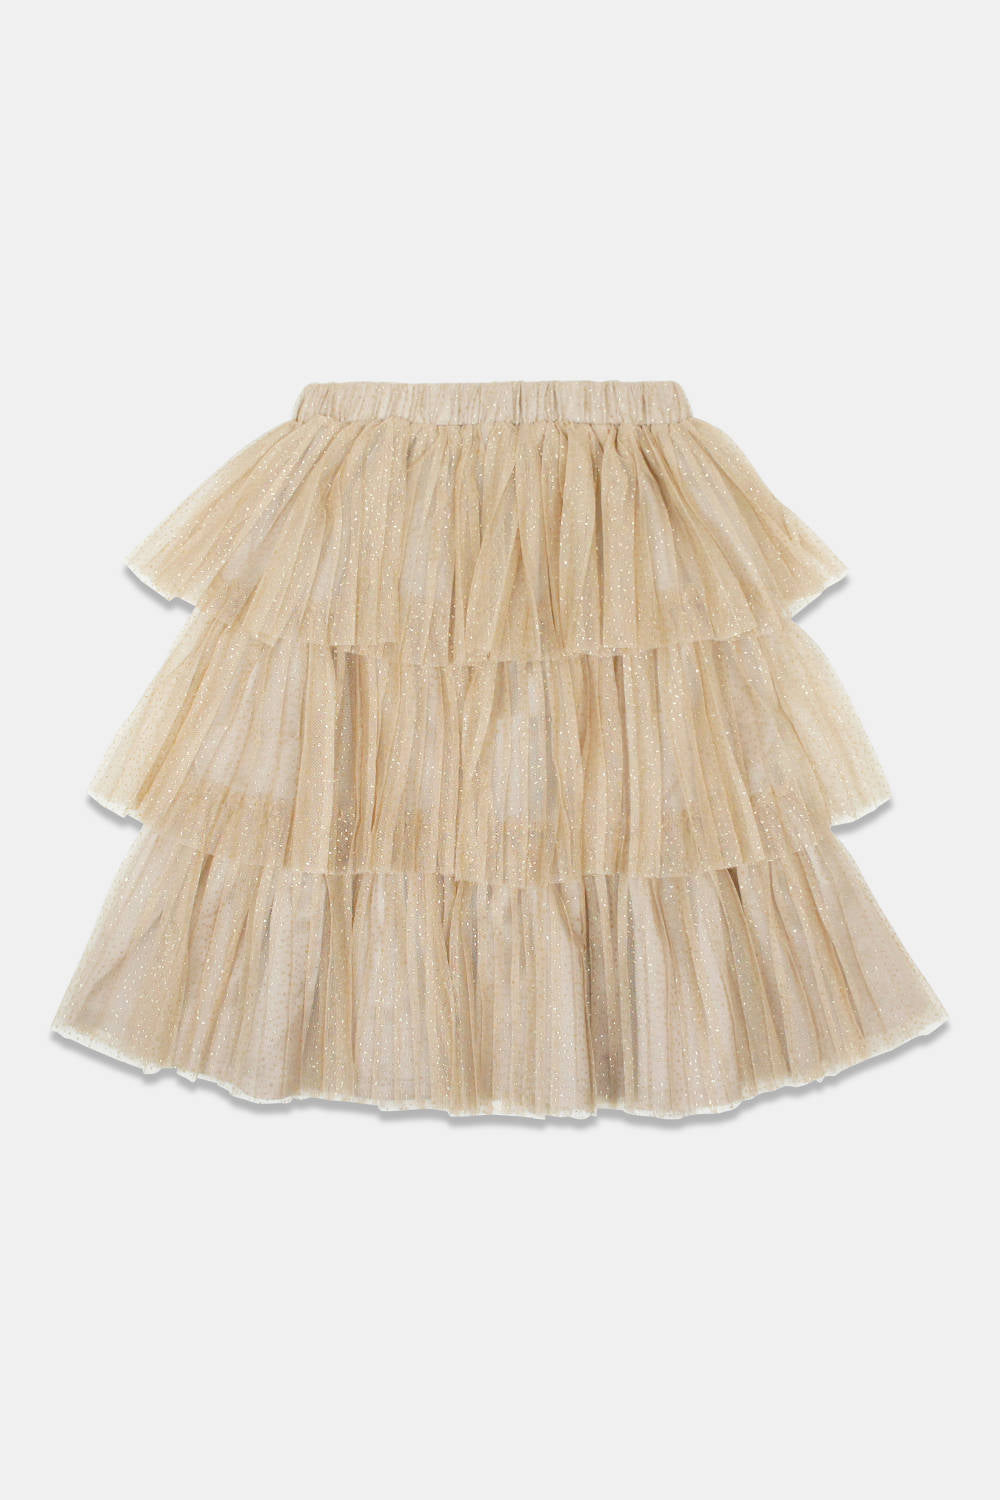 Christina Rohde Gold Tulle Skirt